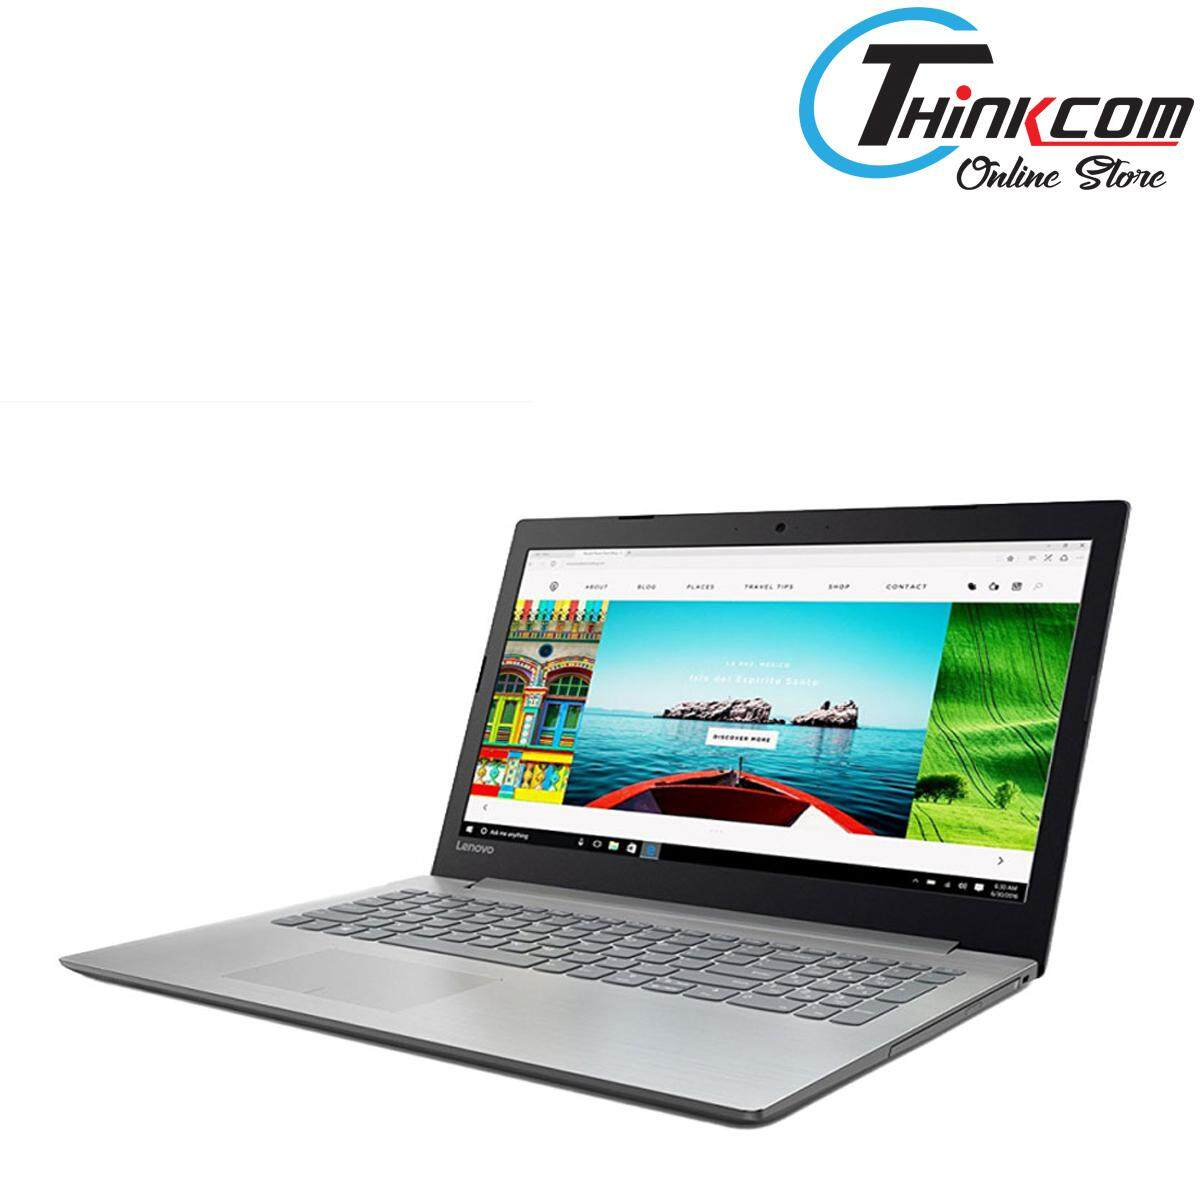 LENOVO IDEAPAD 330-15ARR - 81D20063MJ (PLATINUM GREY) (AMD RYZEN 5 2500U 2.0Ghz/ 4GBD4 /2TB/ ATI R5 540 2GB DDR5/ 15.6FHD/ 2Y On-Site + Premium Care) Malaysia